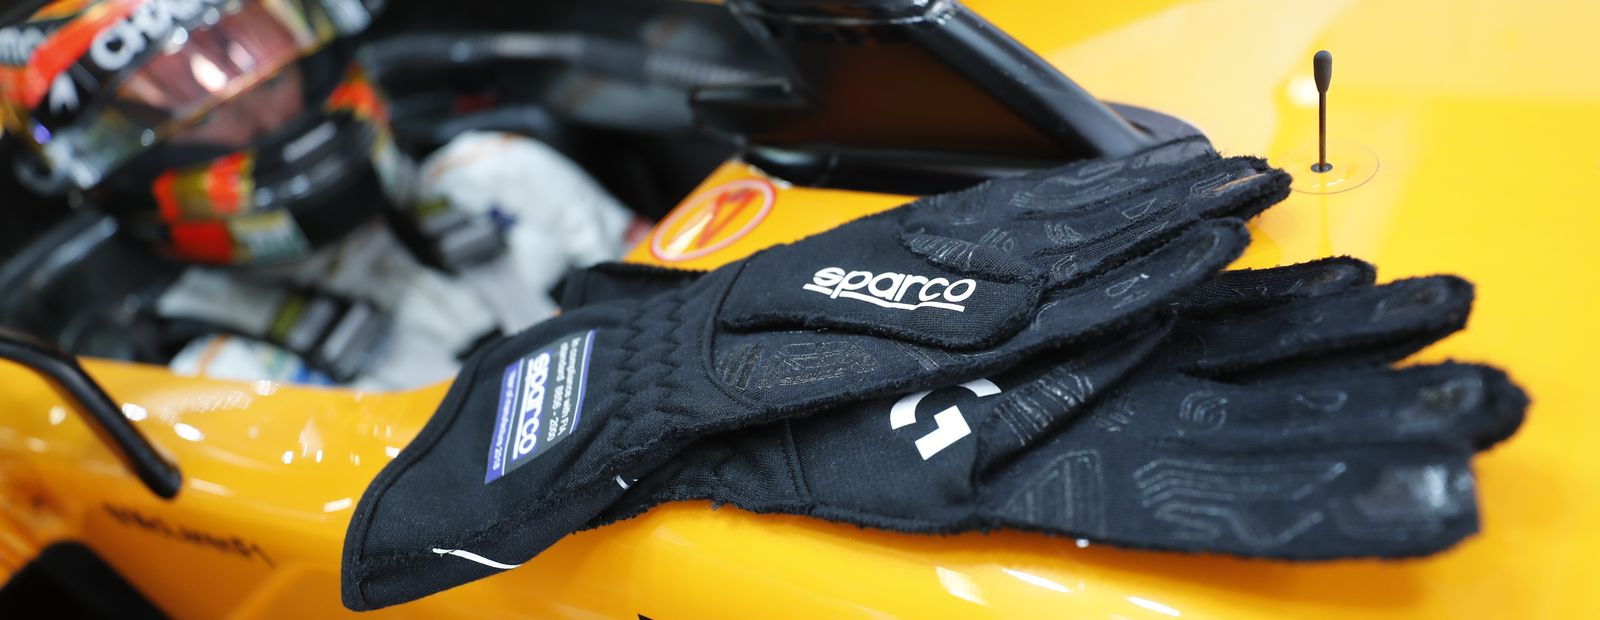 McLaren and Sparco extend partnership